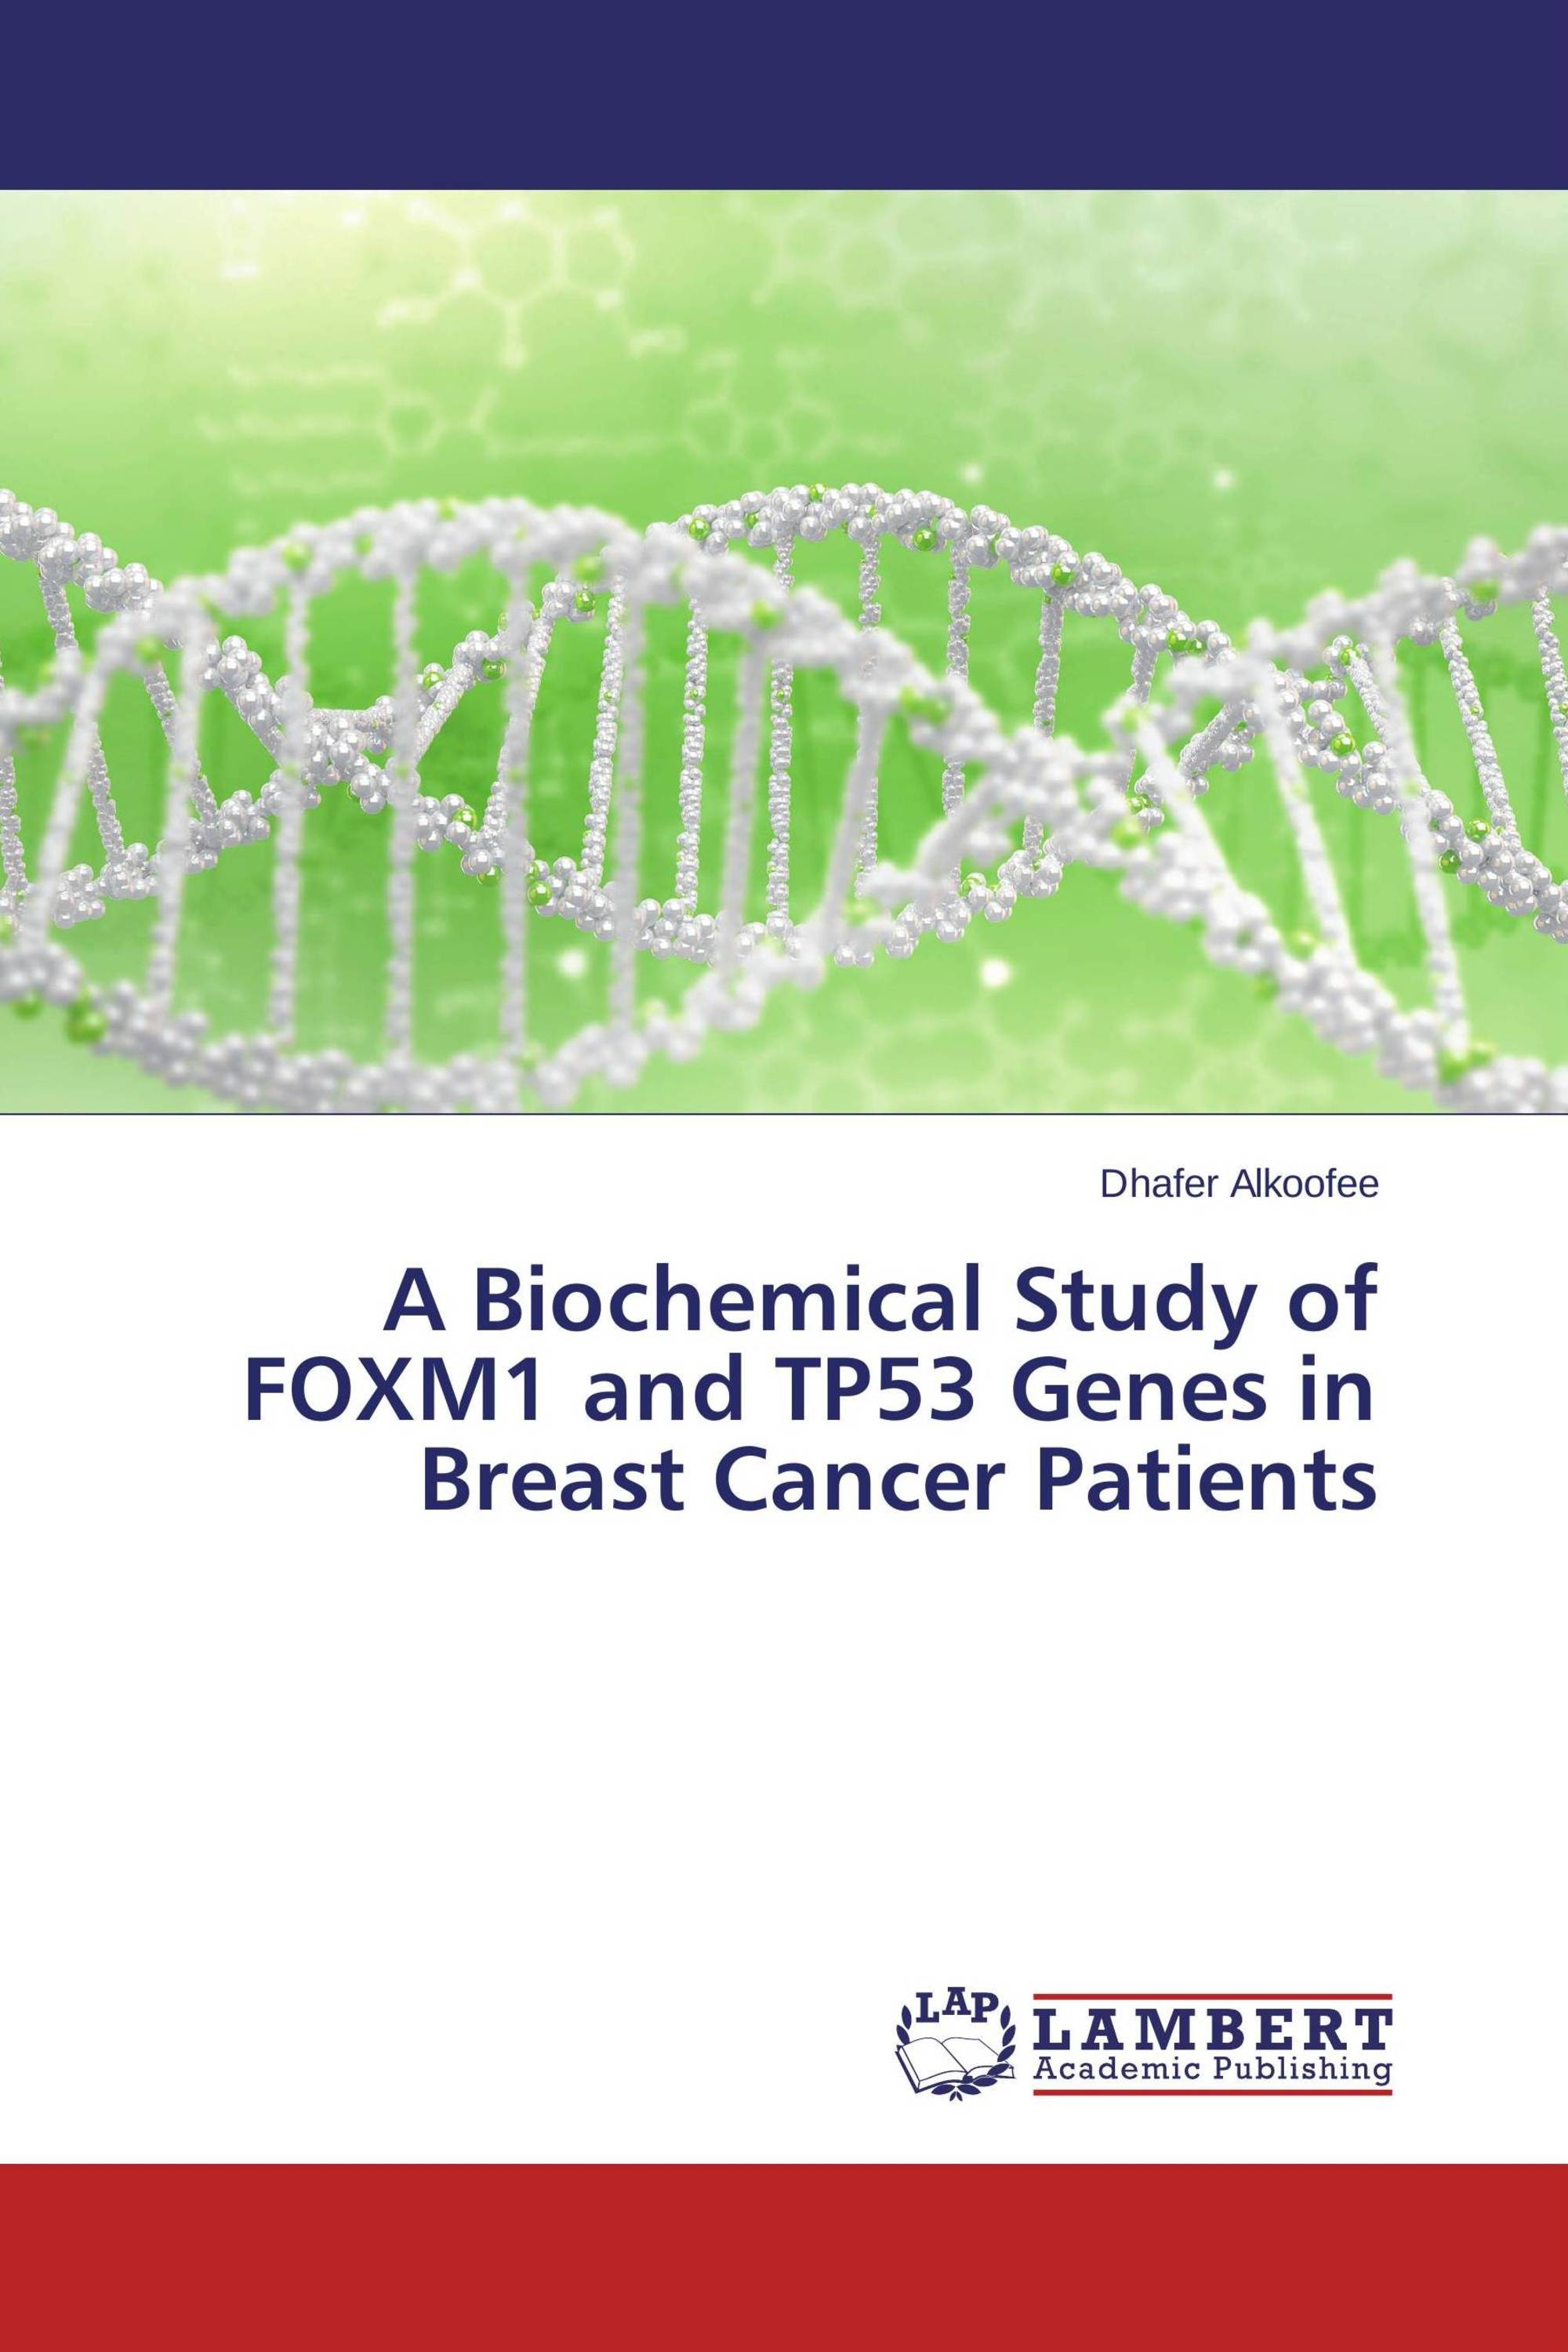 A Biochemical Study of FOXM1 and TP53 Genes in Breast Cancer Patients